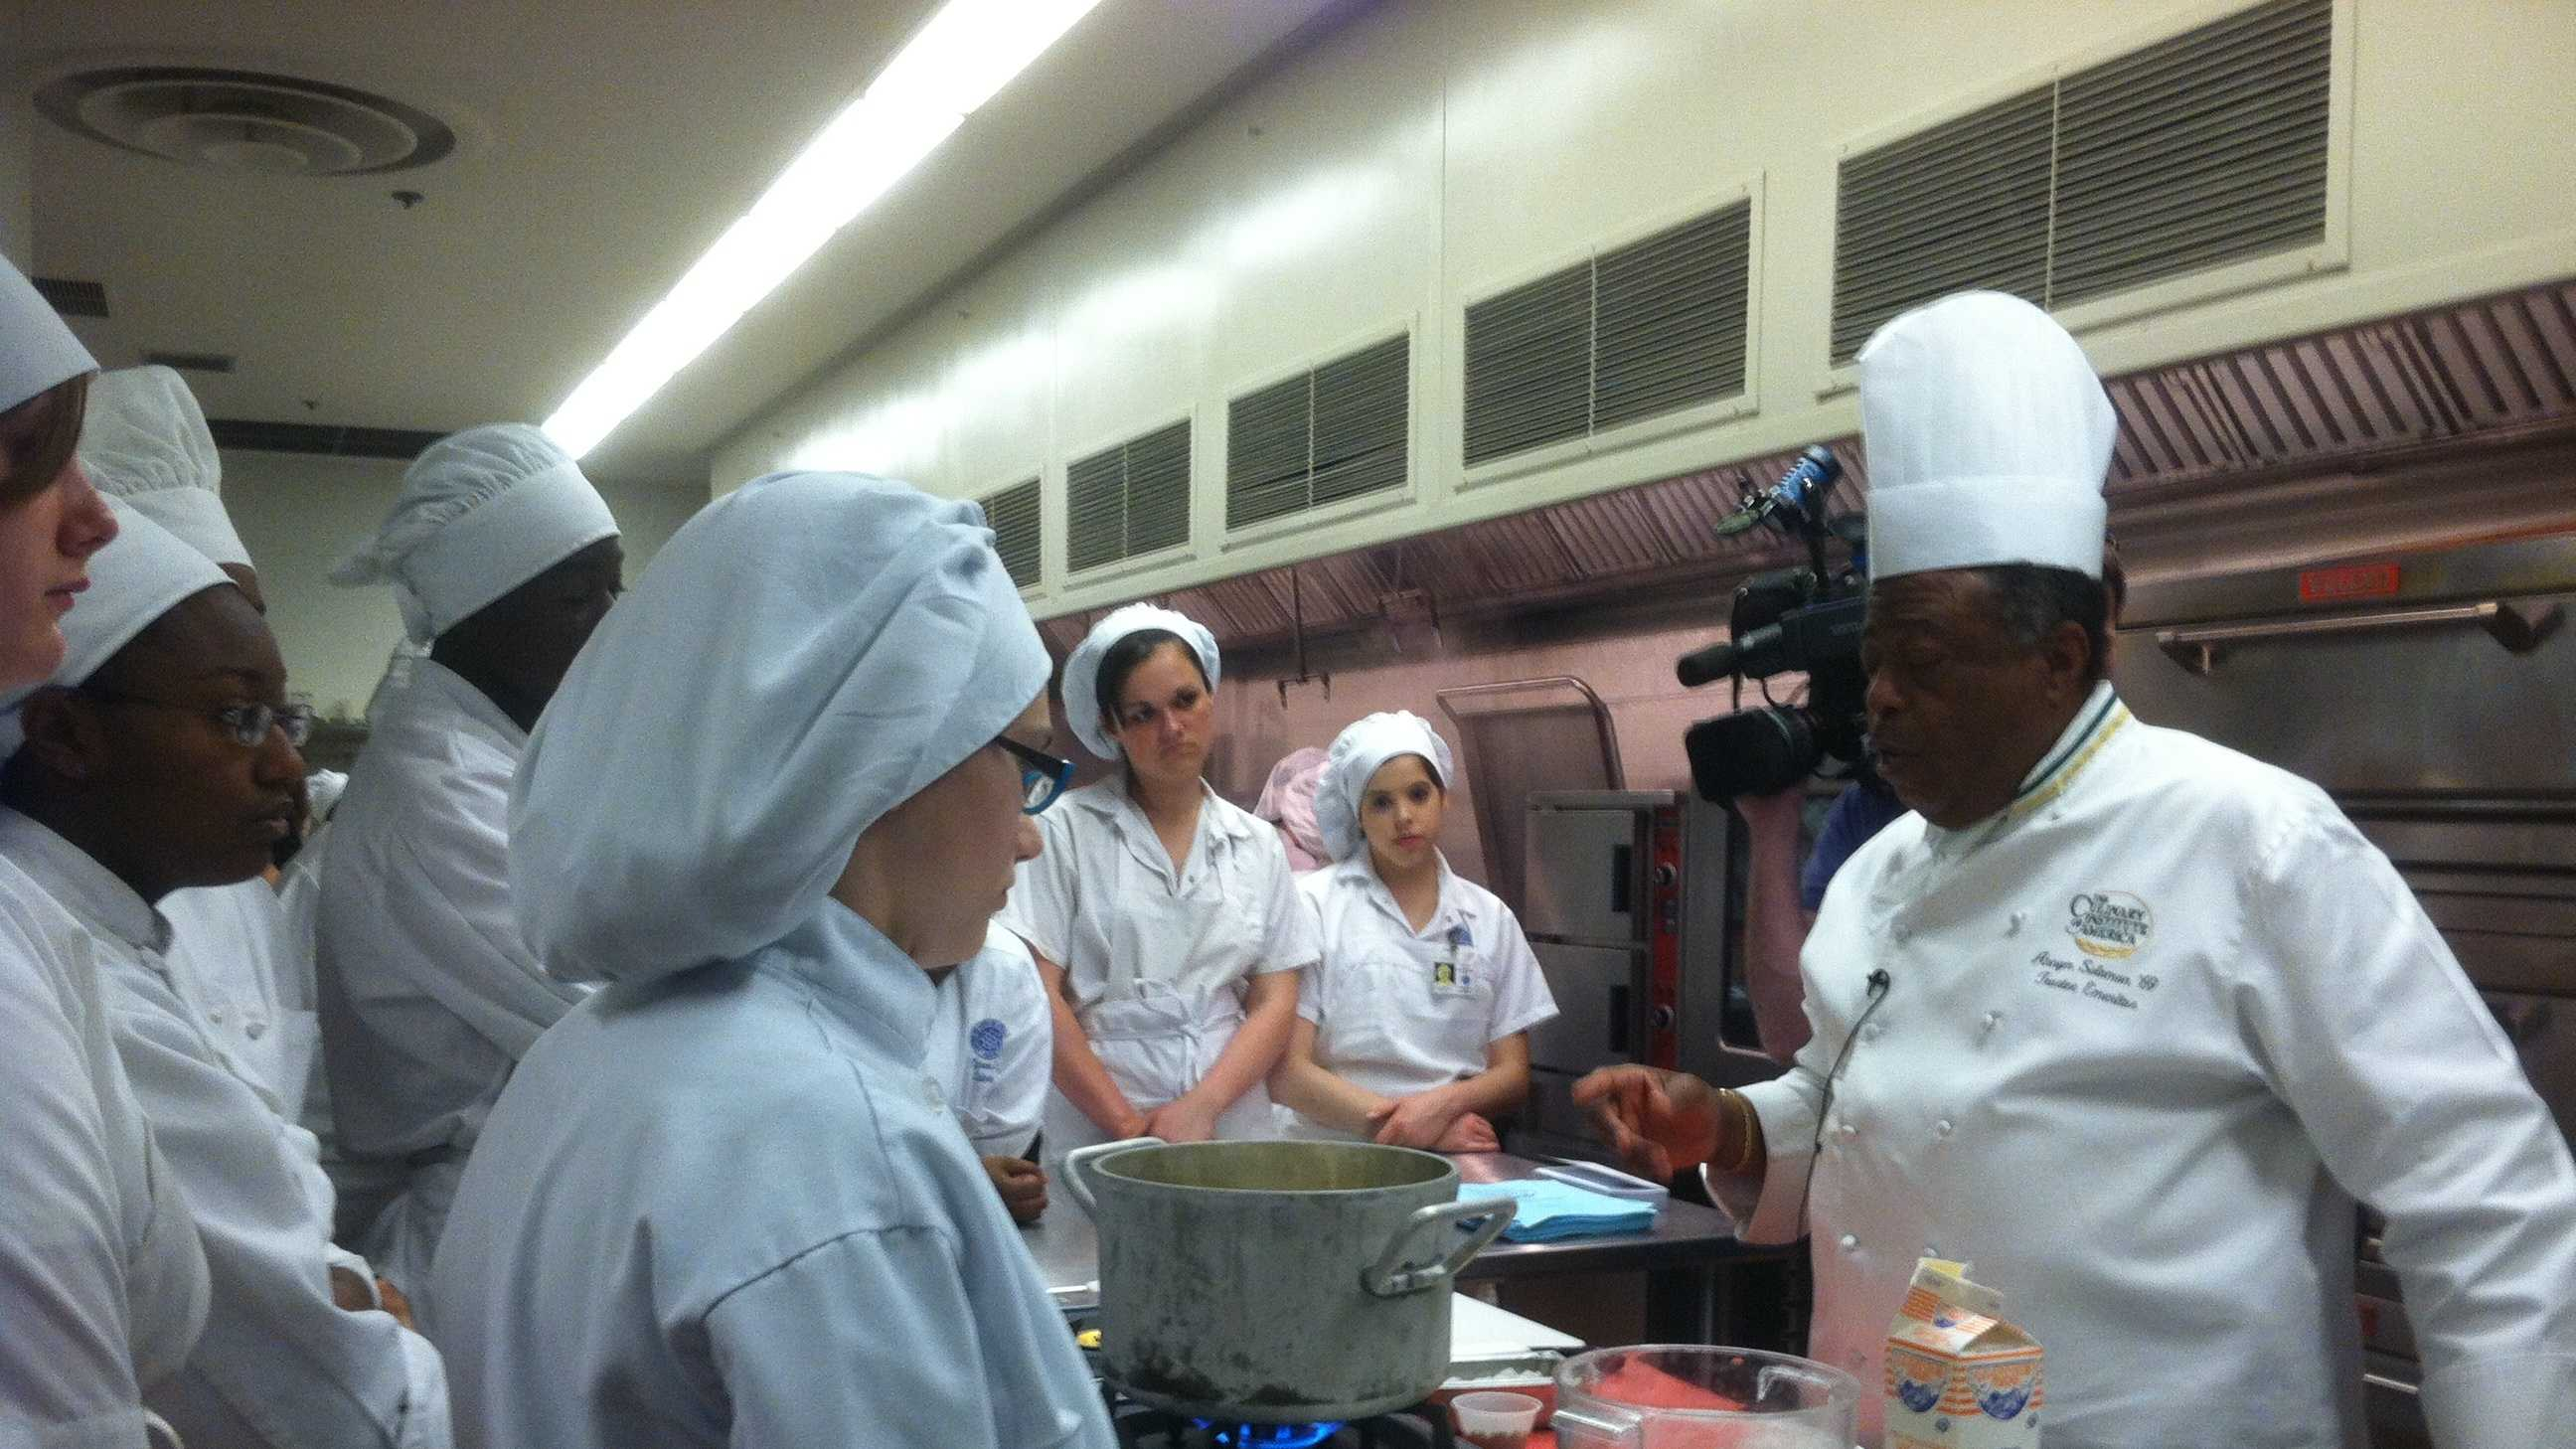 The student chefs at the Center of Applied Technology North in Anne Arundel County have been fine-tuning their skills in the kitchen all year.